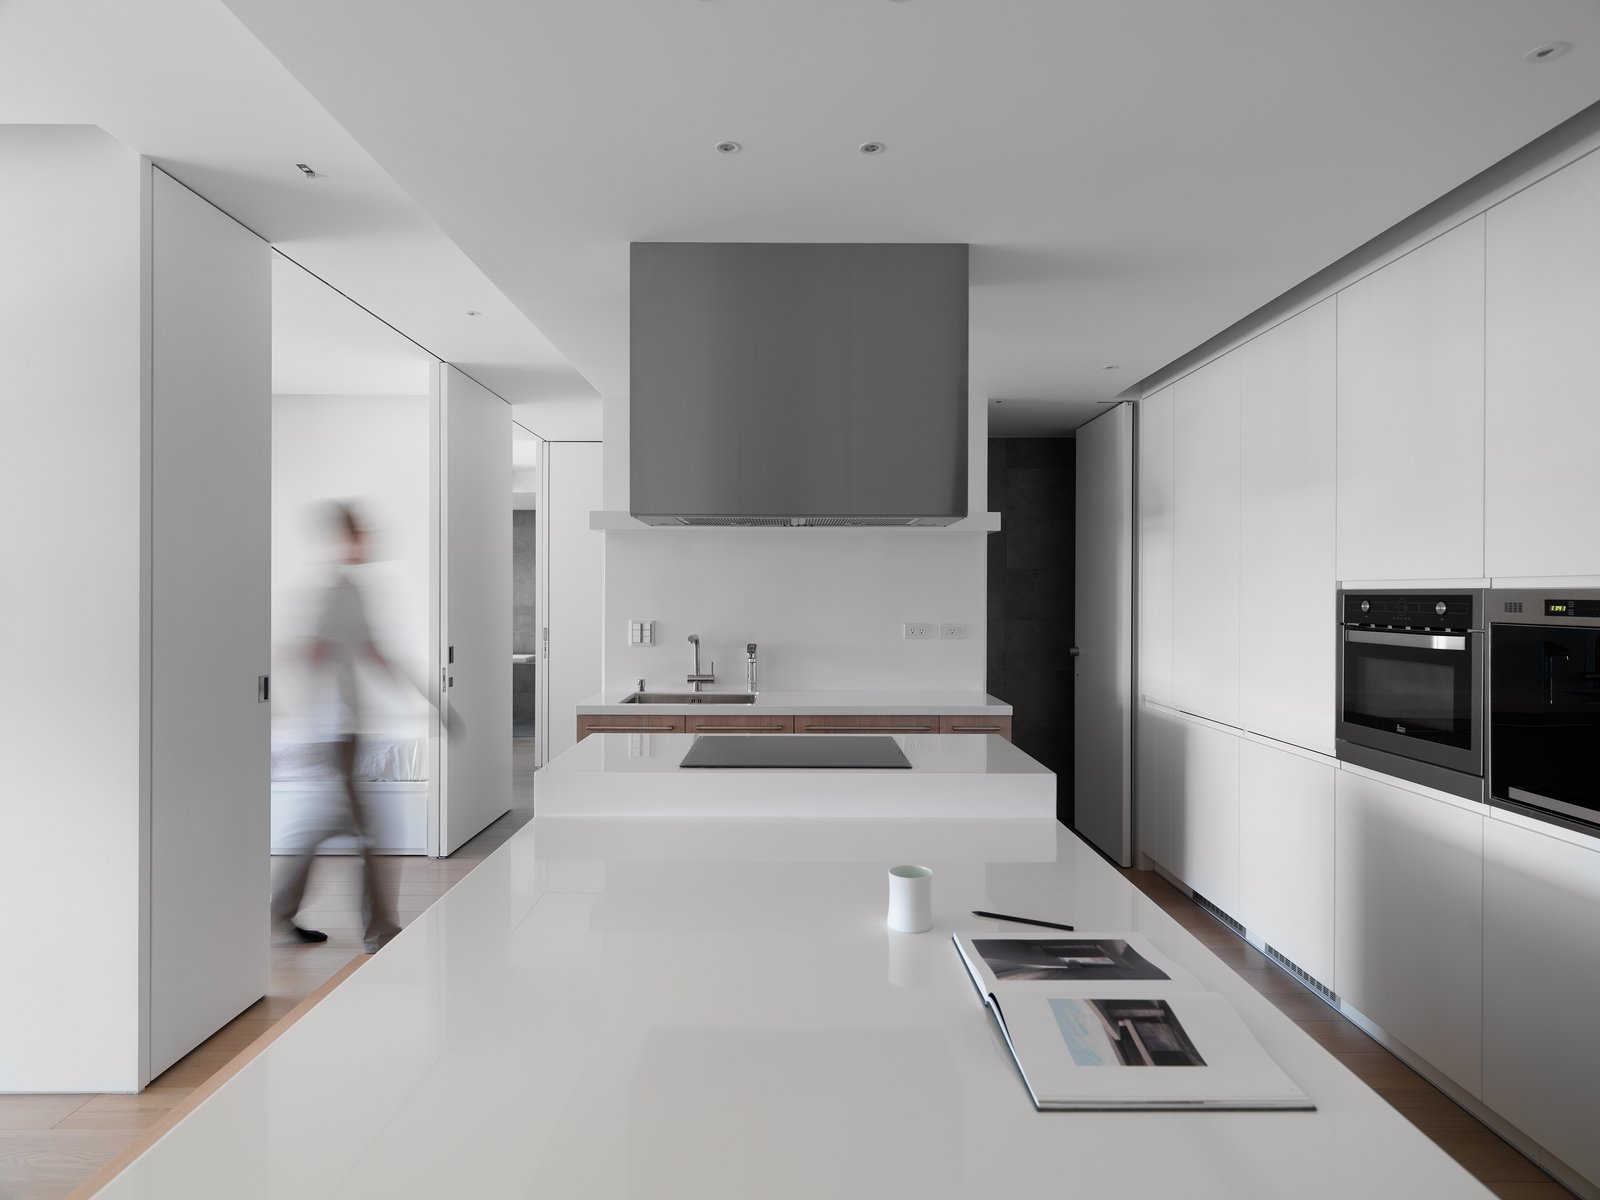 Spacious table top serves as cooking, dinning, and working surface.  KT Apartment by Marty Chou Architecture